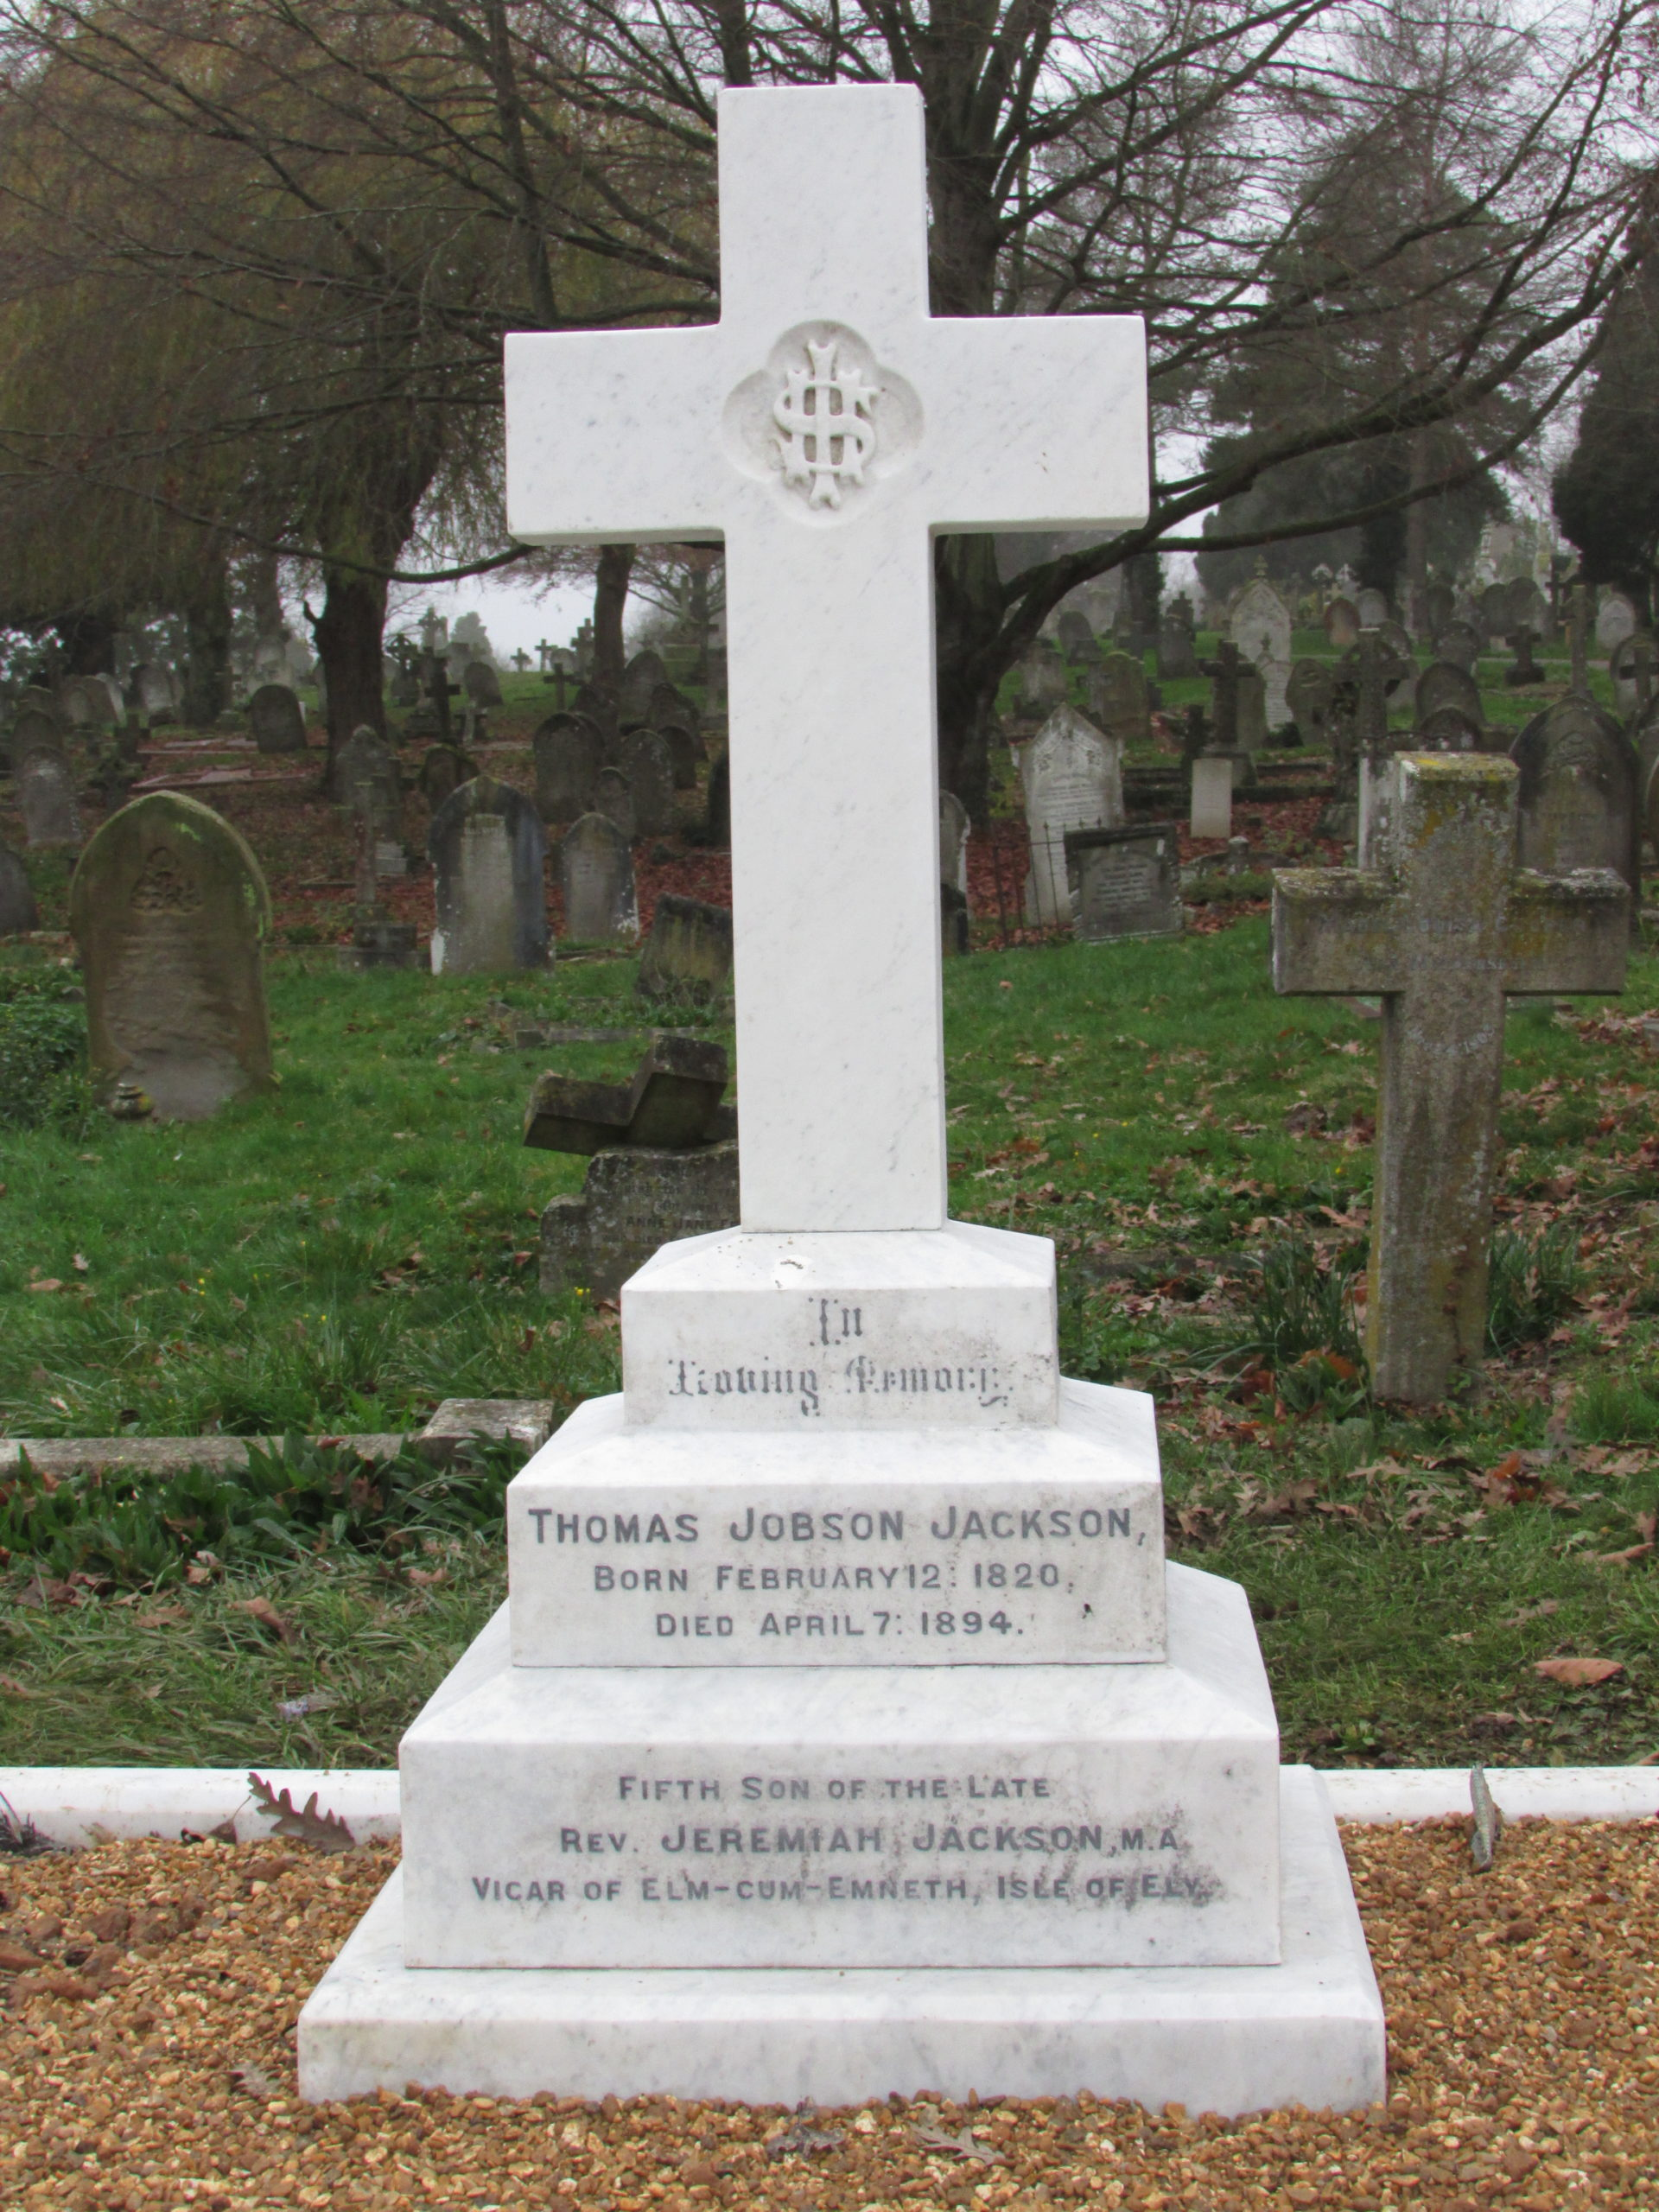 Thomas Jobson Jackson - Architect of Foster Hill Road Cemetery